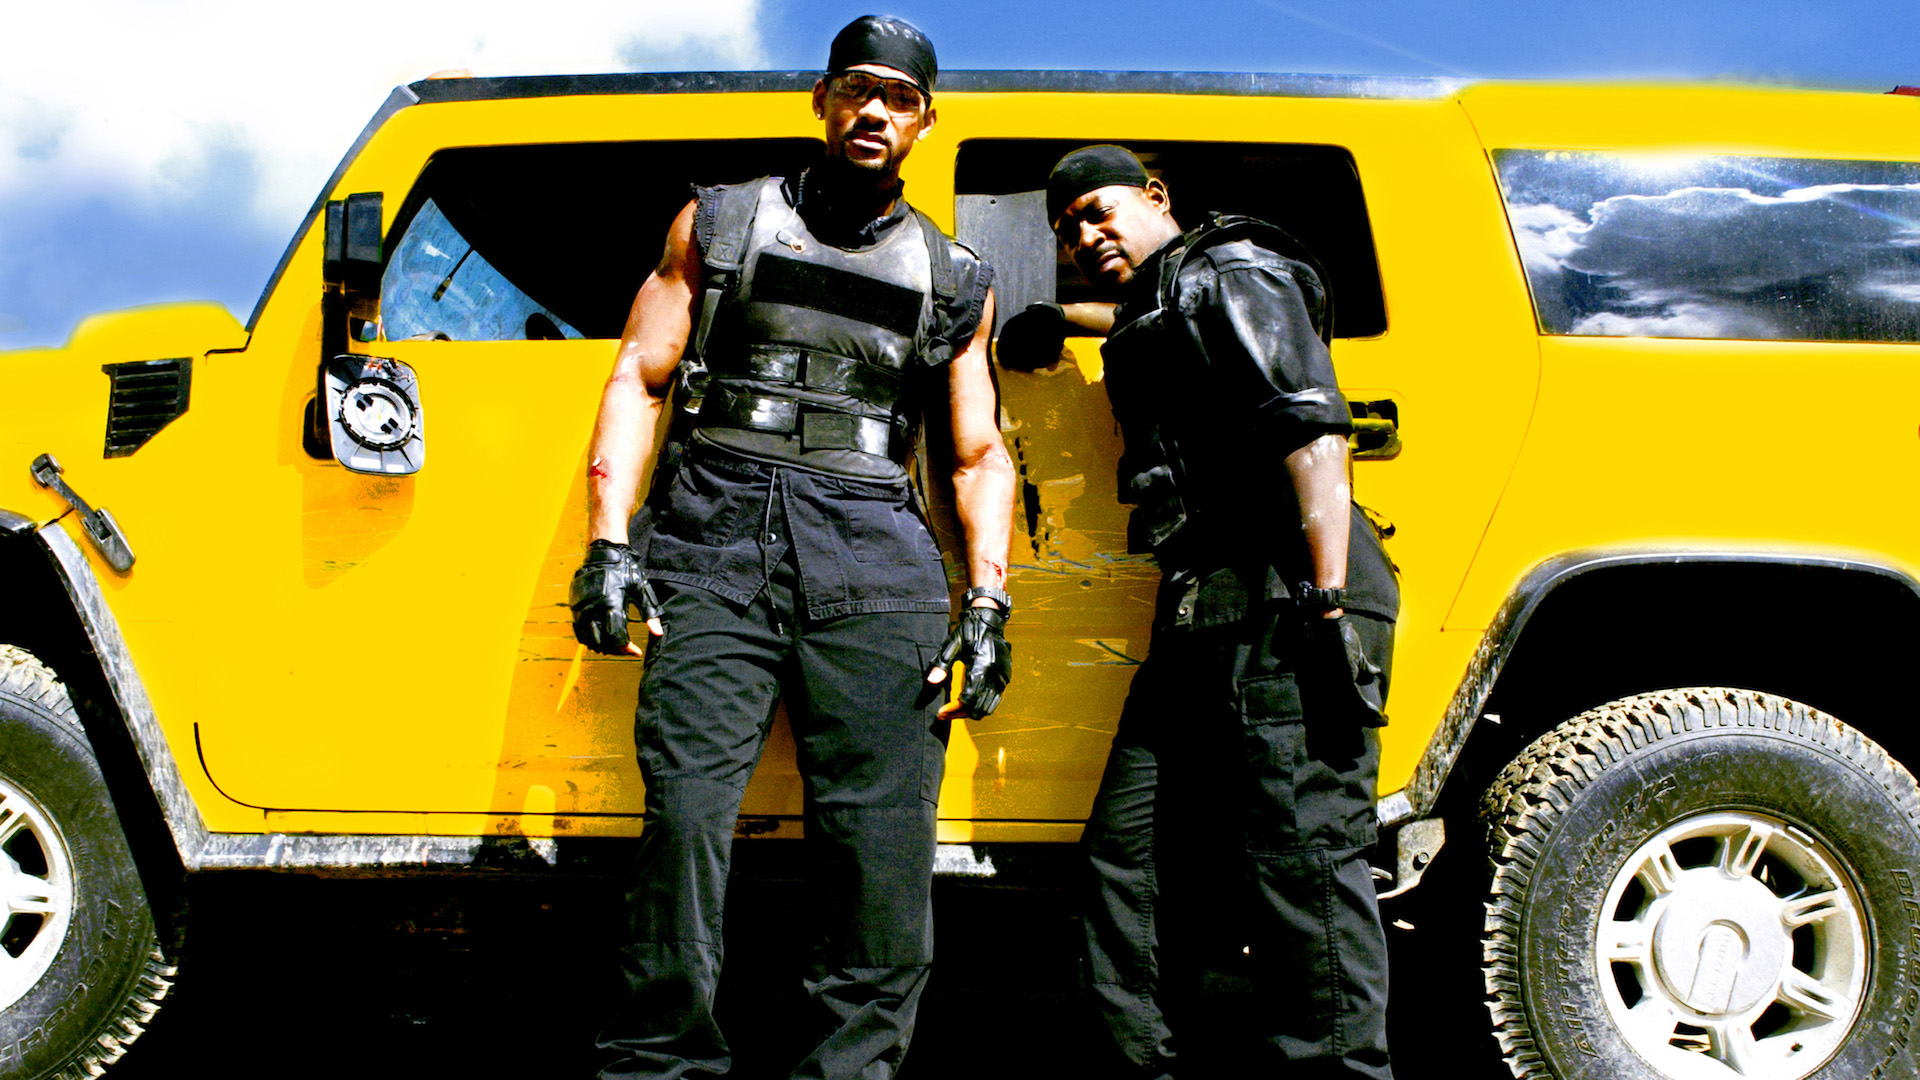 Will Smith in Bad Boys II